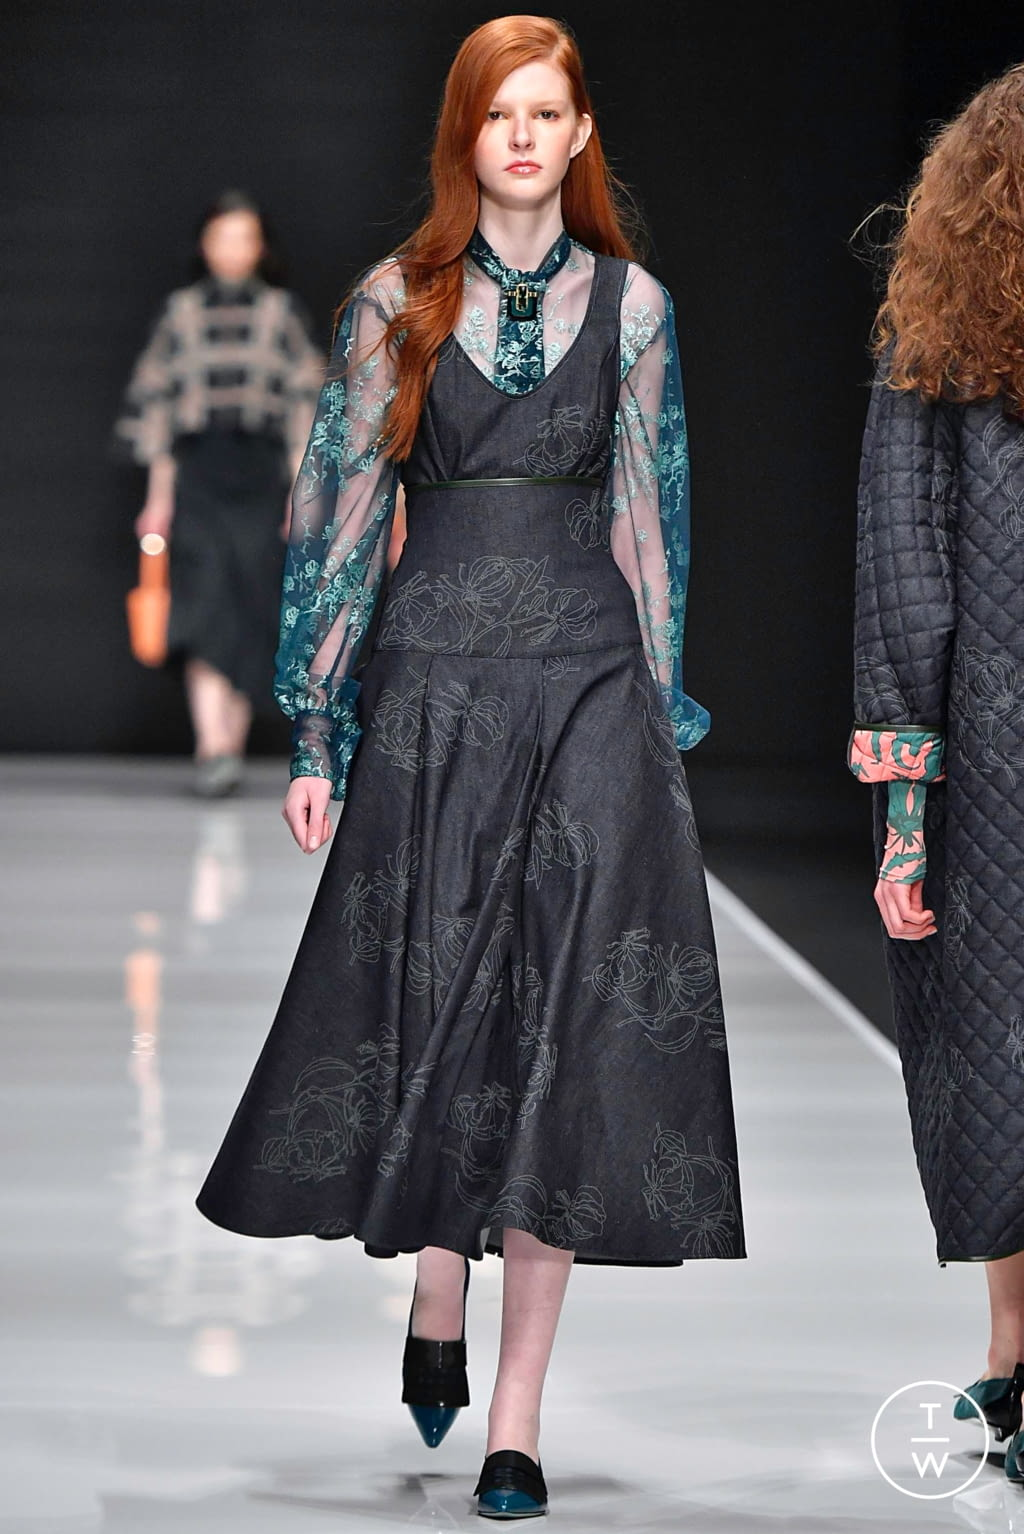 Fashion Week Milan Fall/Winter 2019 look 12 from the Anteprima collection 女装